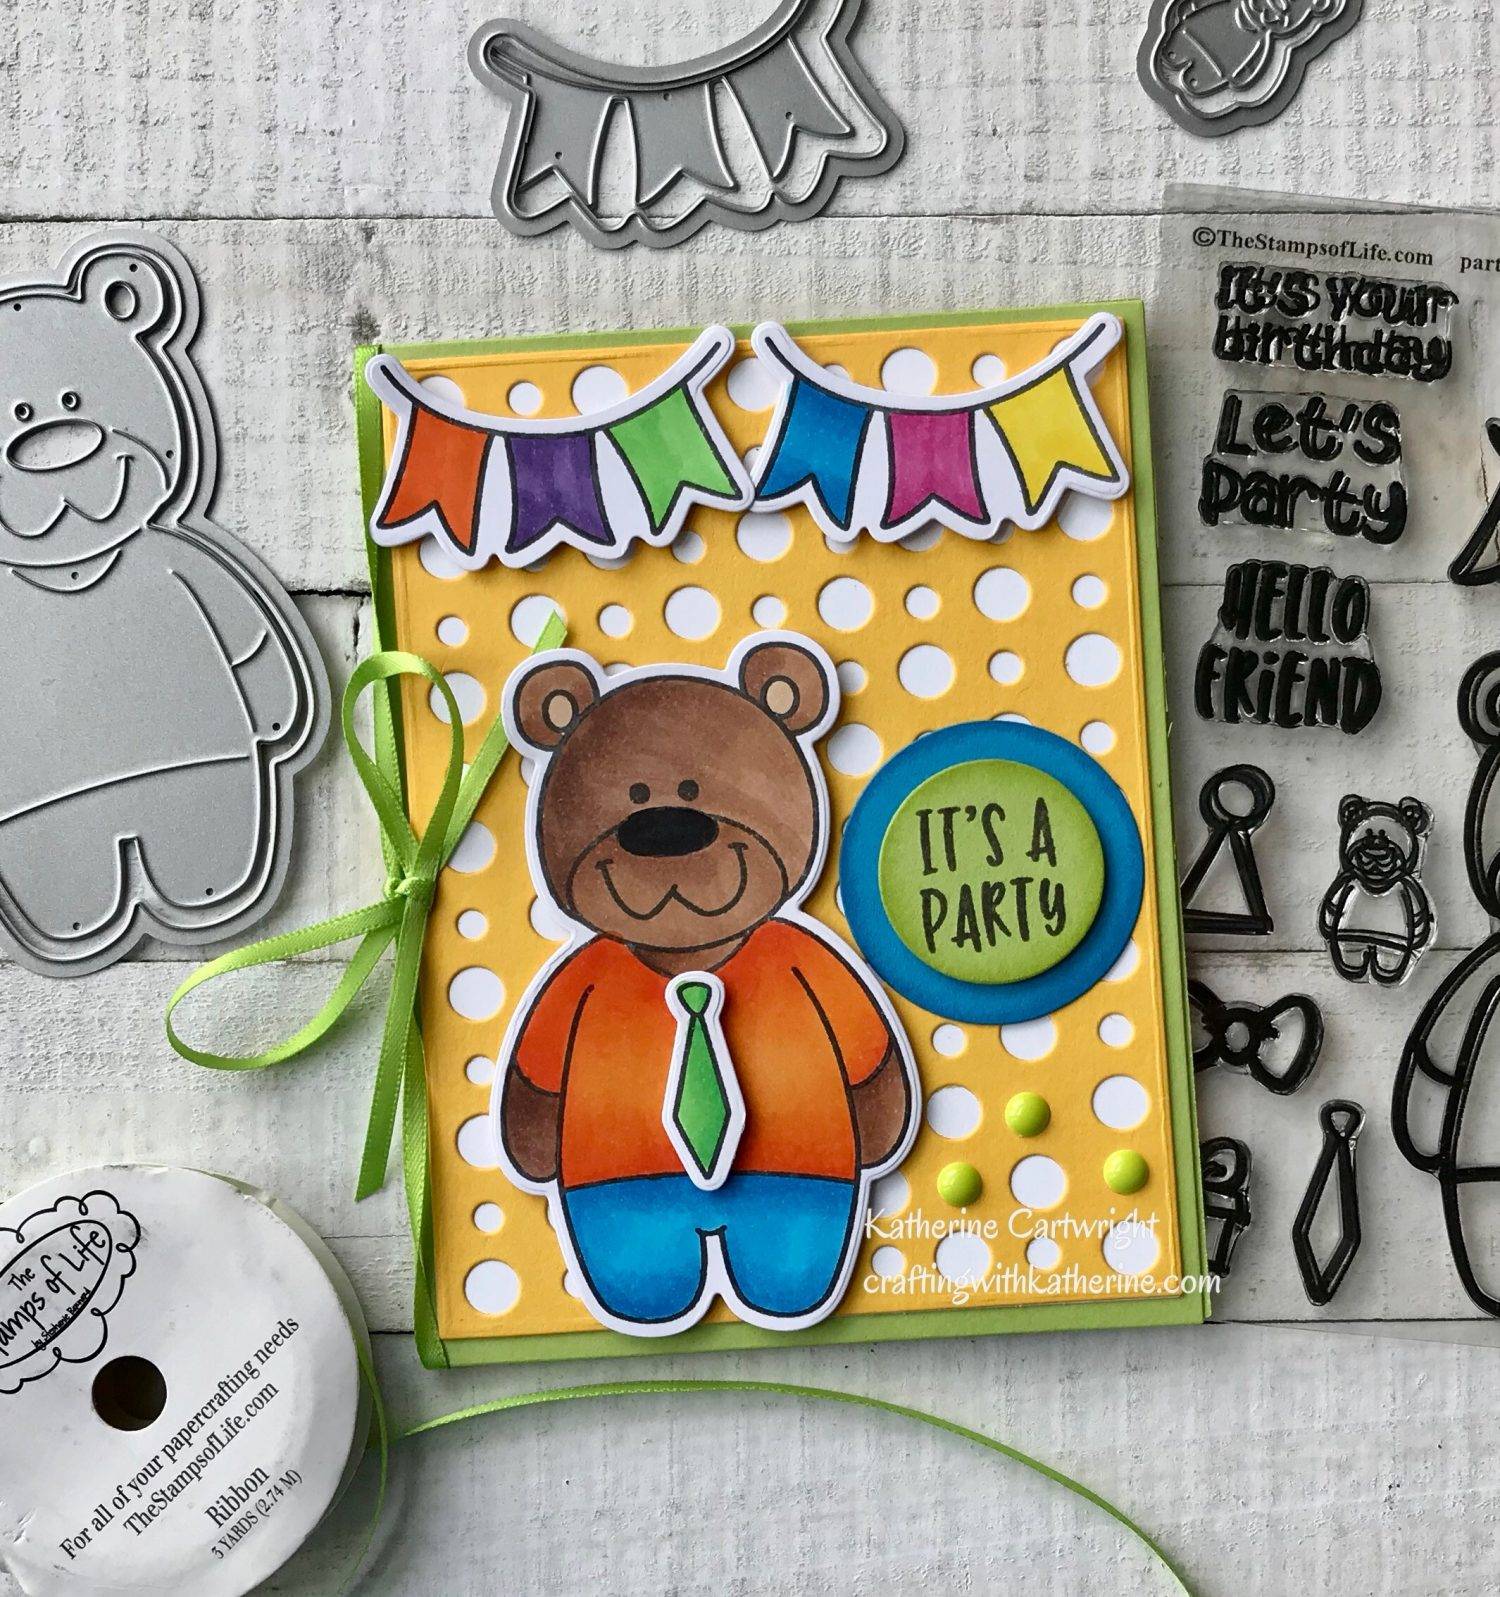 Party Bear from The Stamps of Life